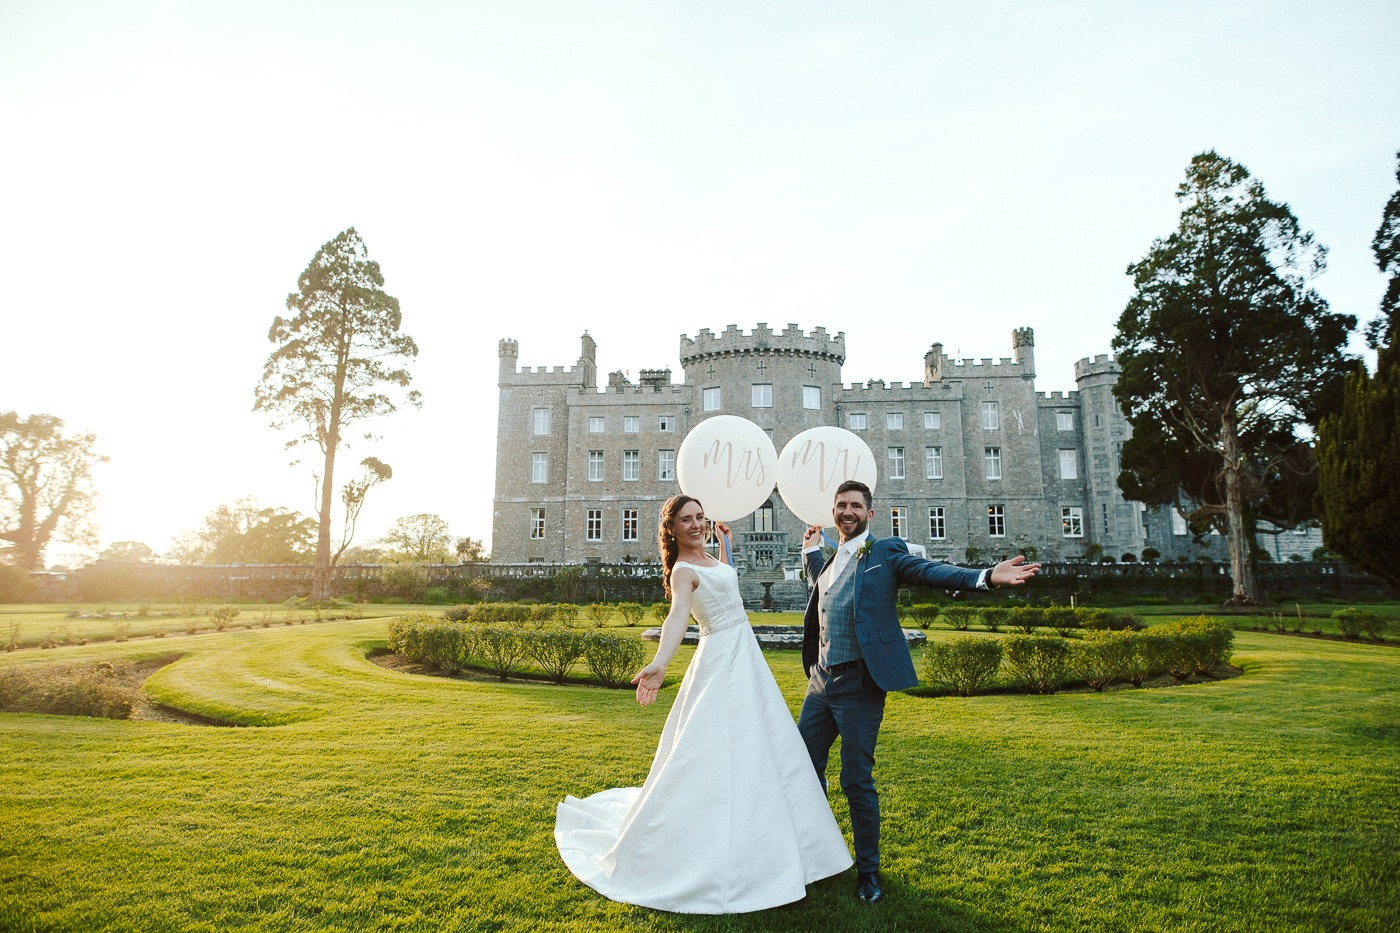 Samantha & Larry's Wedding at Markree Castle